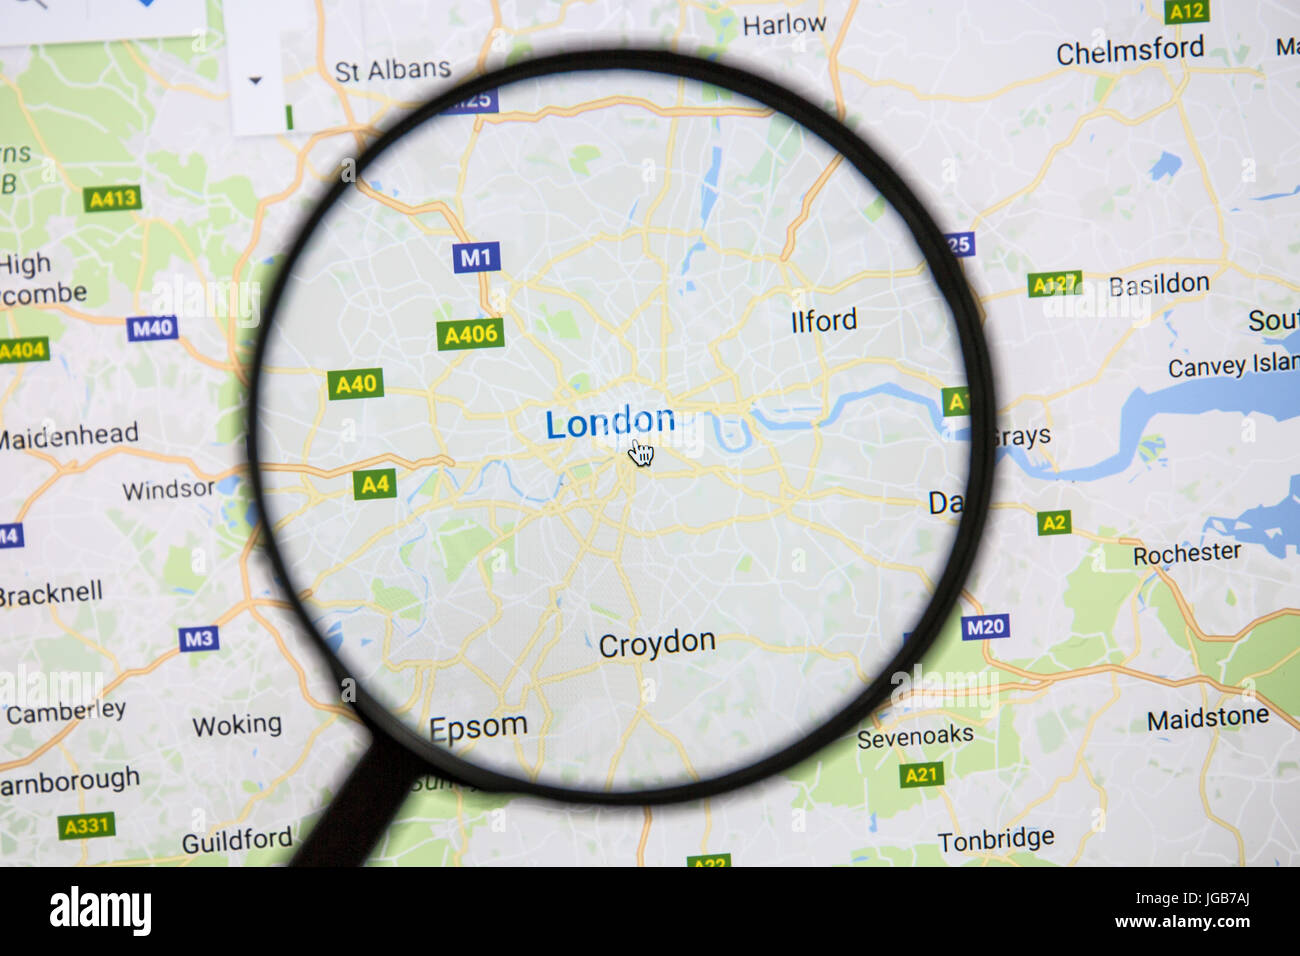 Map Of London On Google Maps Under A Magnifying Glass London Is